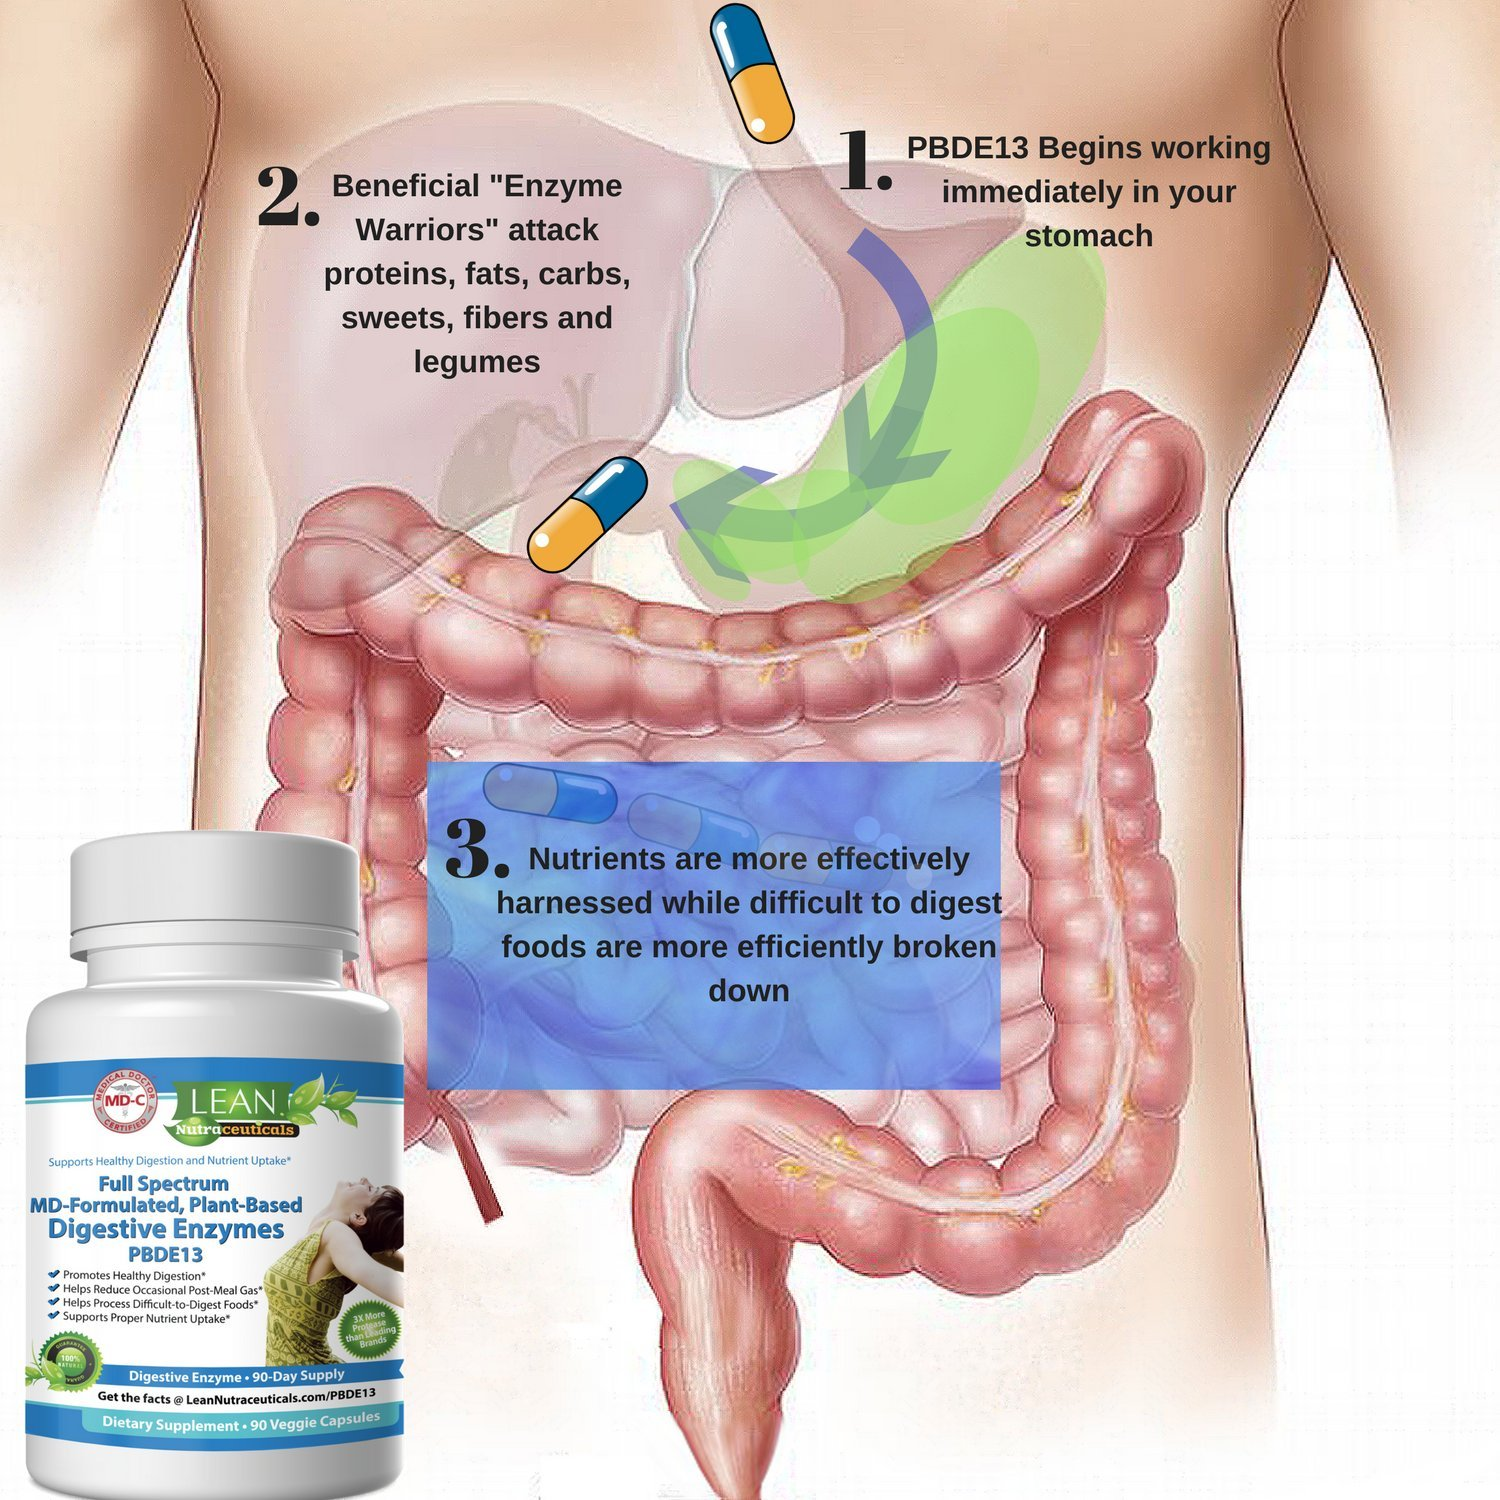 Md Certified Digestive Enzyme Supplements Plant Based Pancreatic Enzymes For Digestion